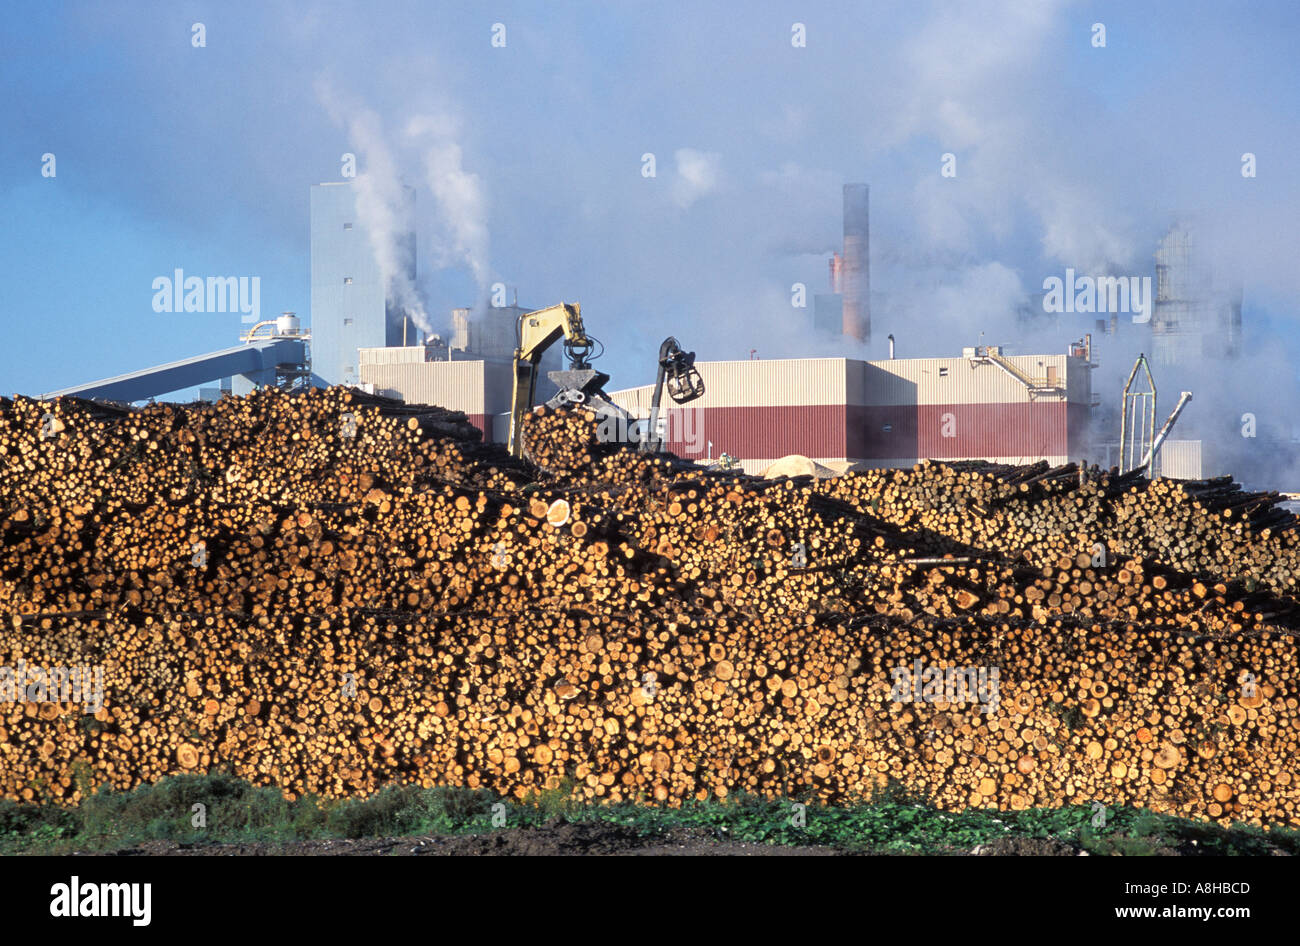 term paper mill canada Founded in 1964, cascades produces, converts and markets packaging and tissue products that are composed mainly of recycled fibres.